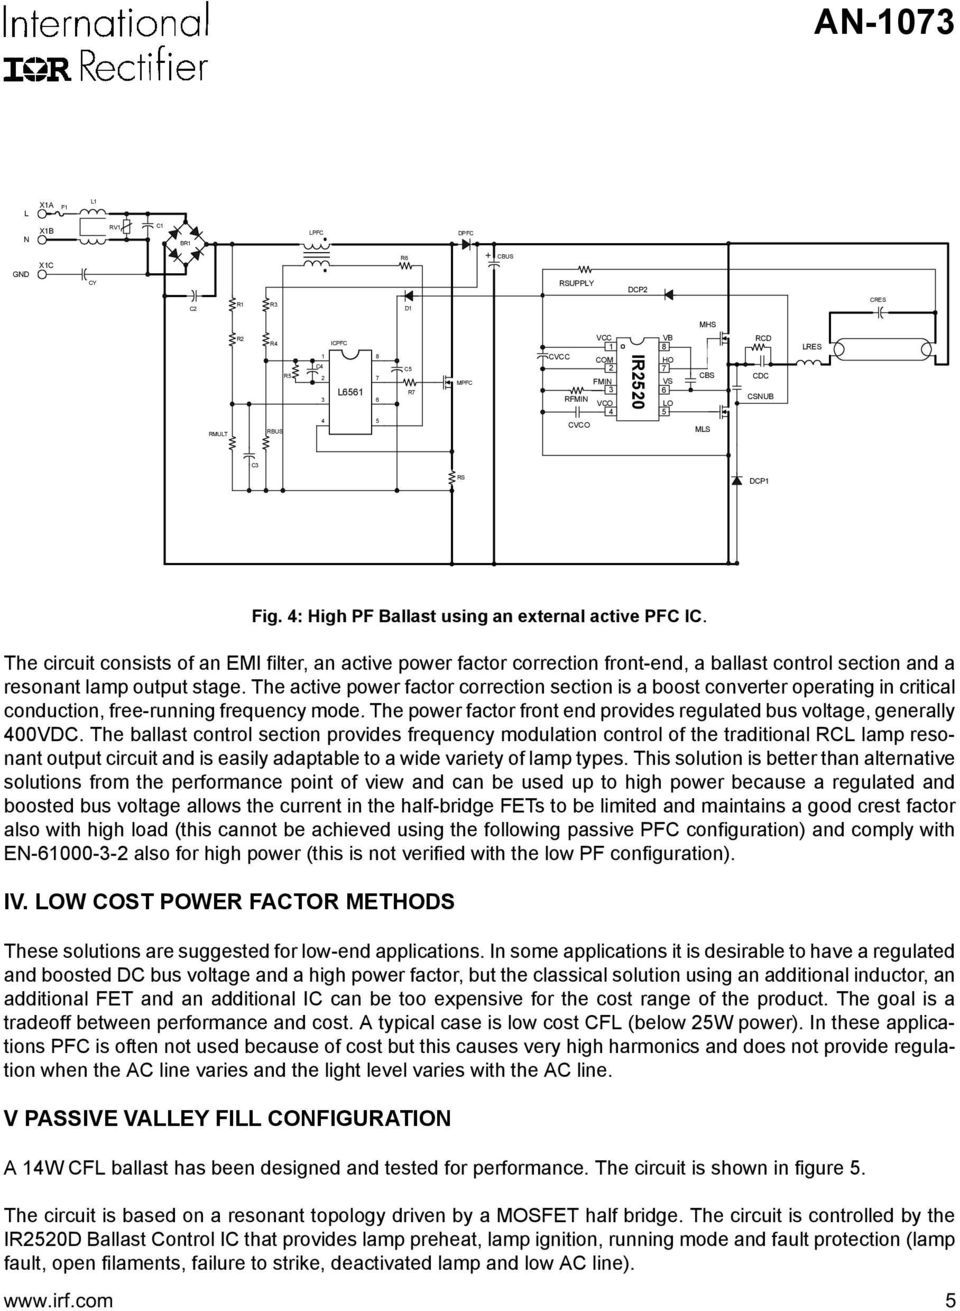 Application Note An Pdf Cfl Ups Circuit Diagram The Consists Of Emi Filter Active Power Factor Correction Front End